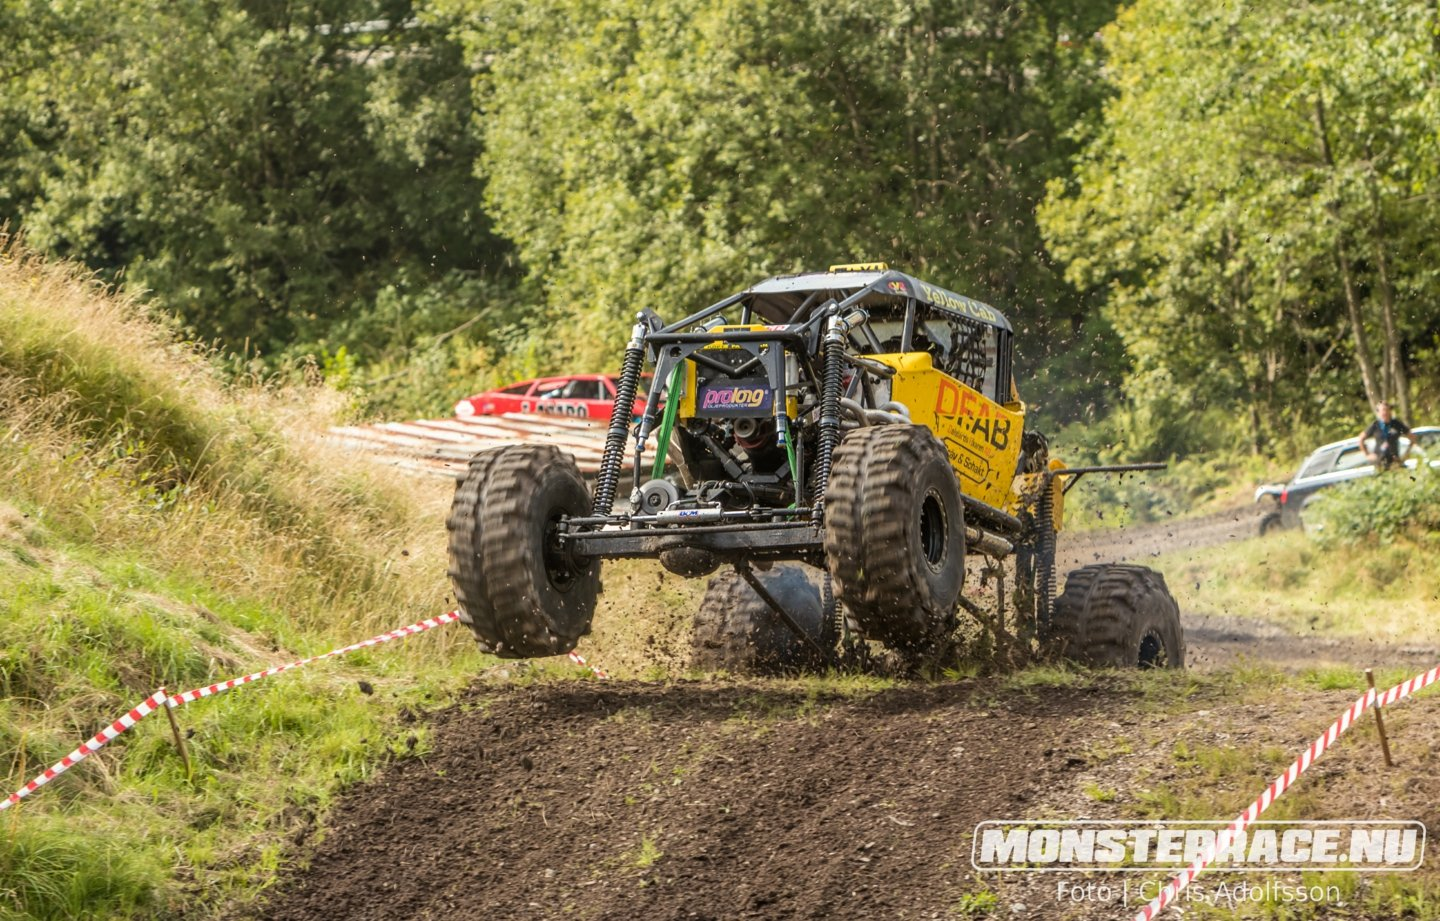 Monsterrace Ed dag 1 (116)